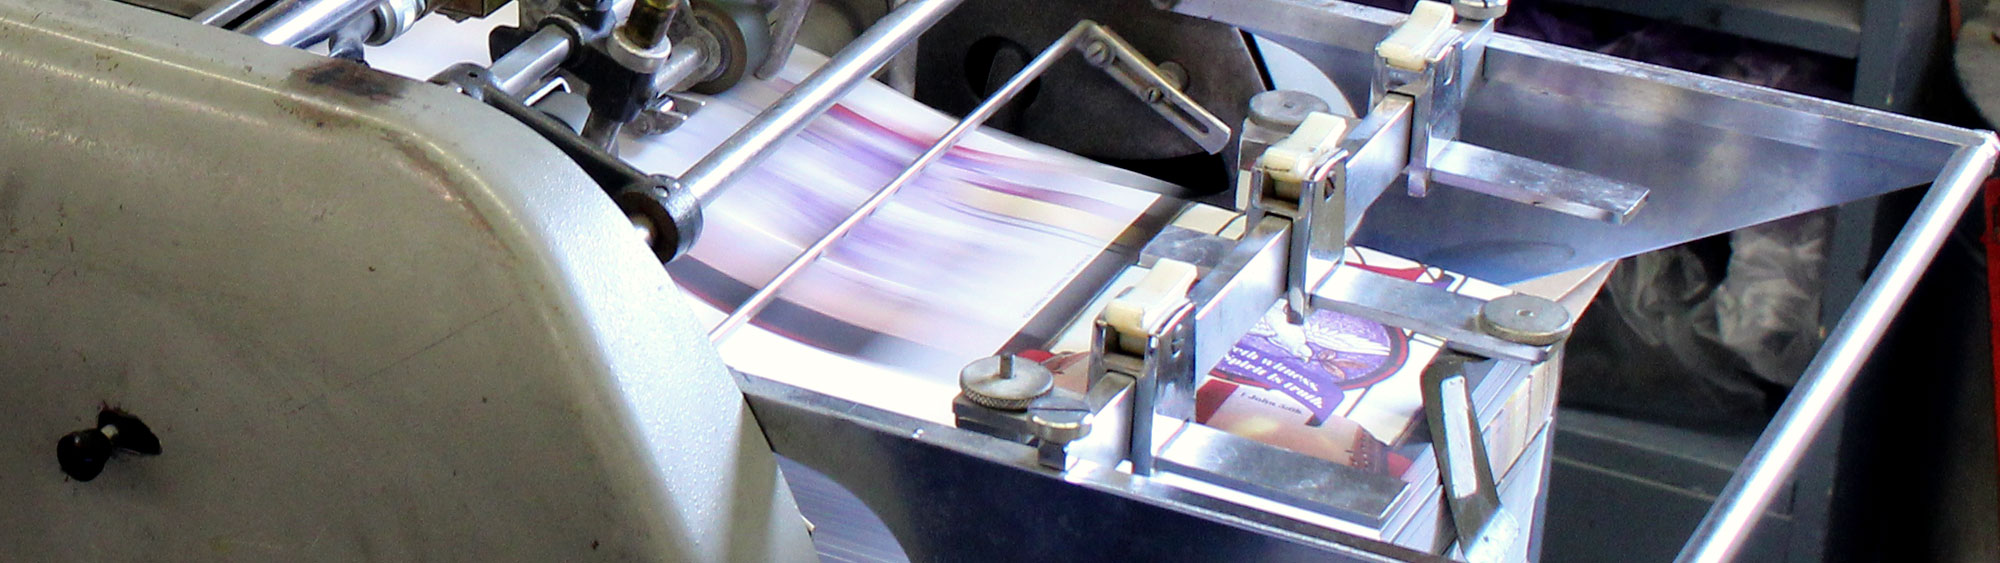 Weekly Church bulletins being printed in a commerical printer at Cathedral Press in Long Prairie, MN